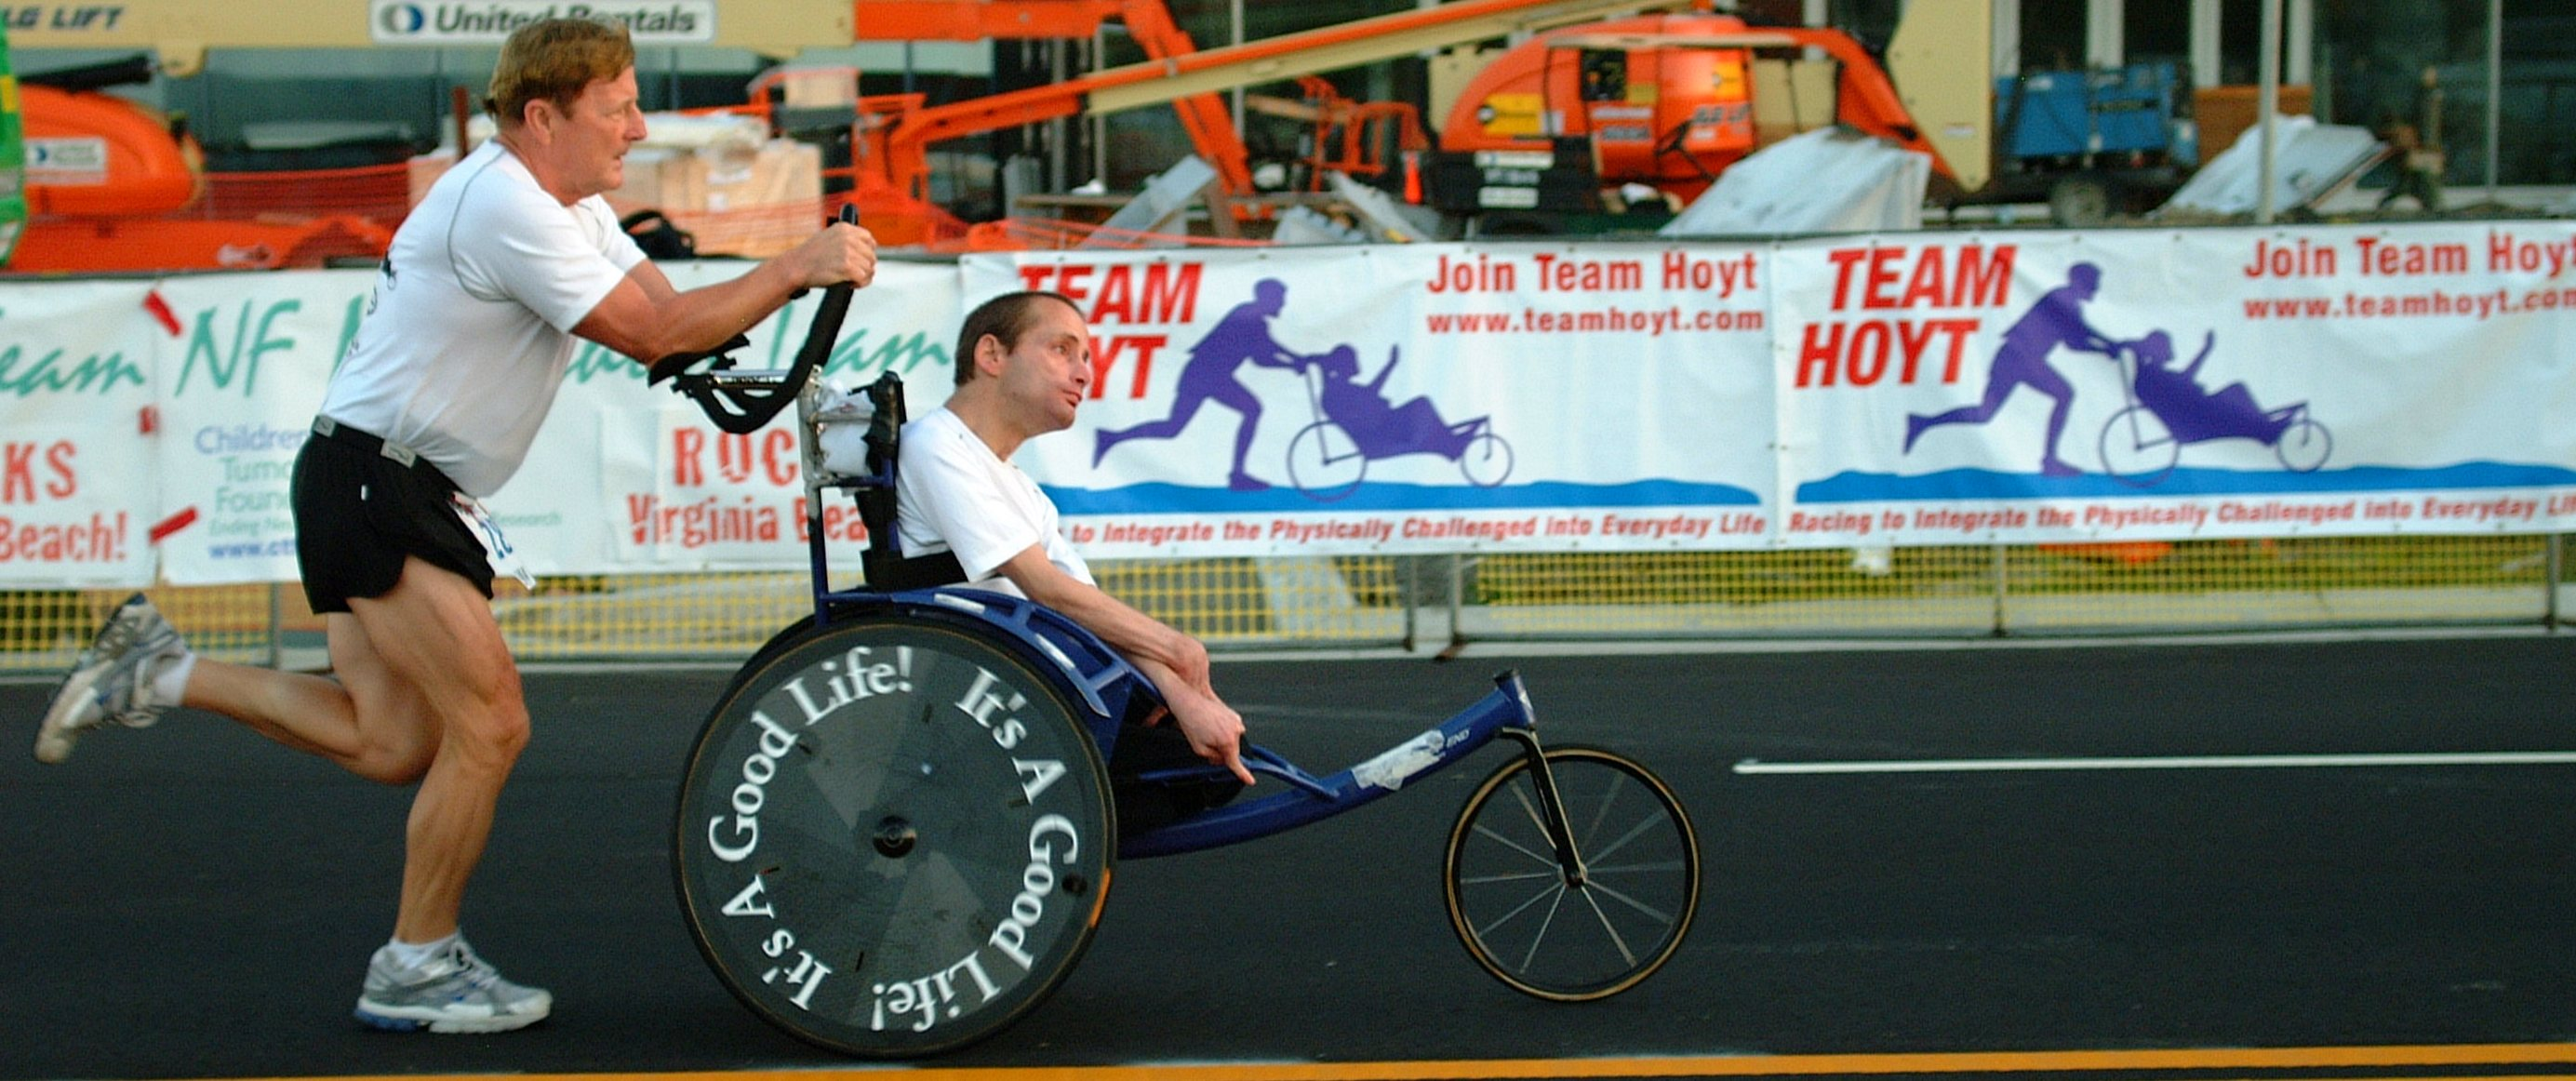 Dick-and-Rick-Hoyt